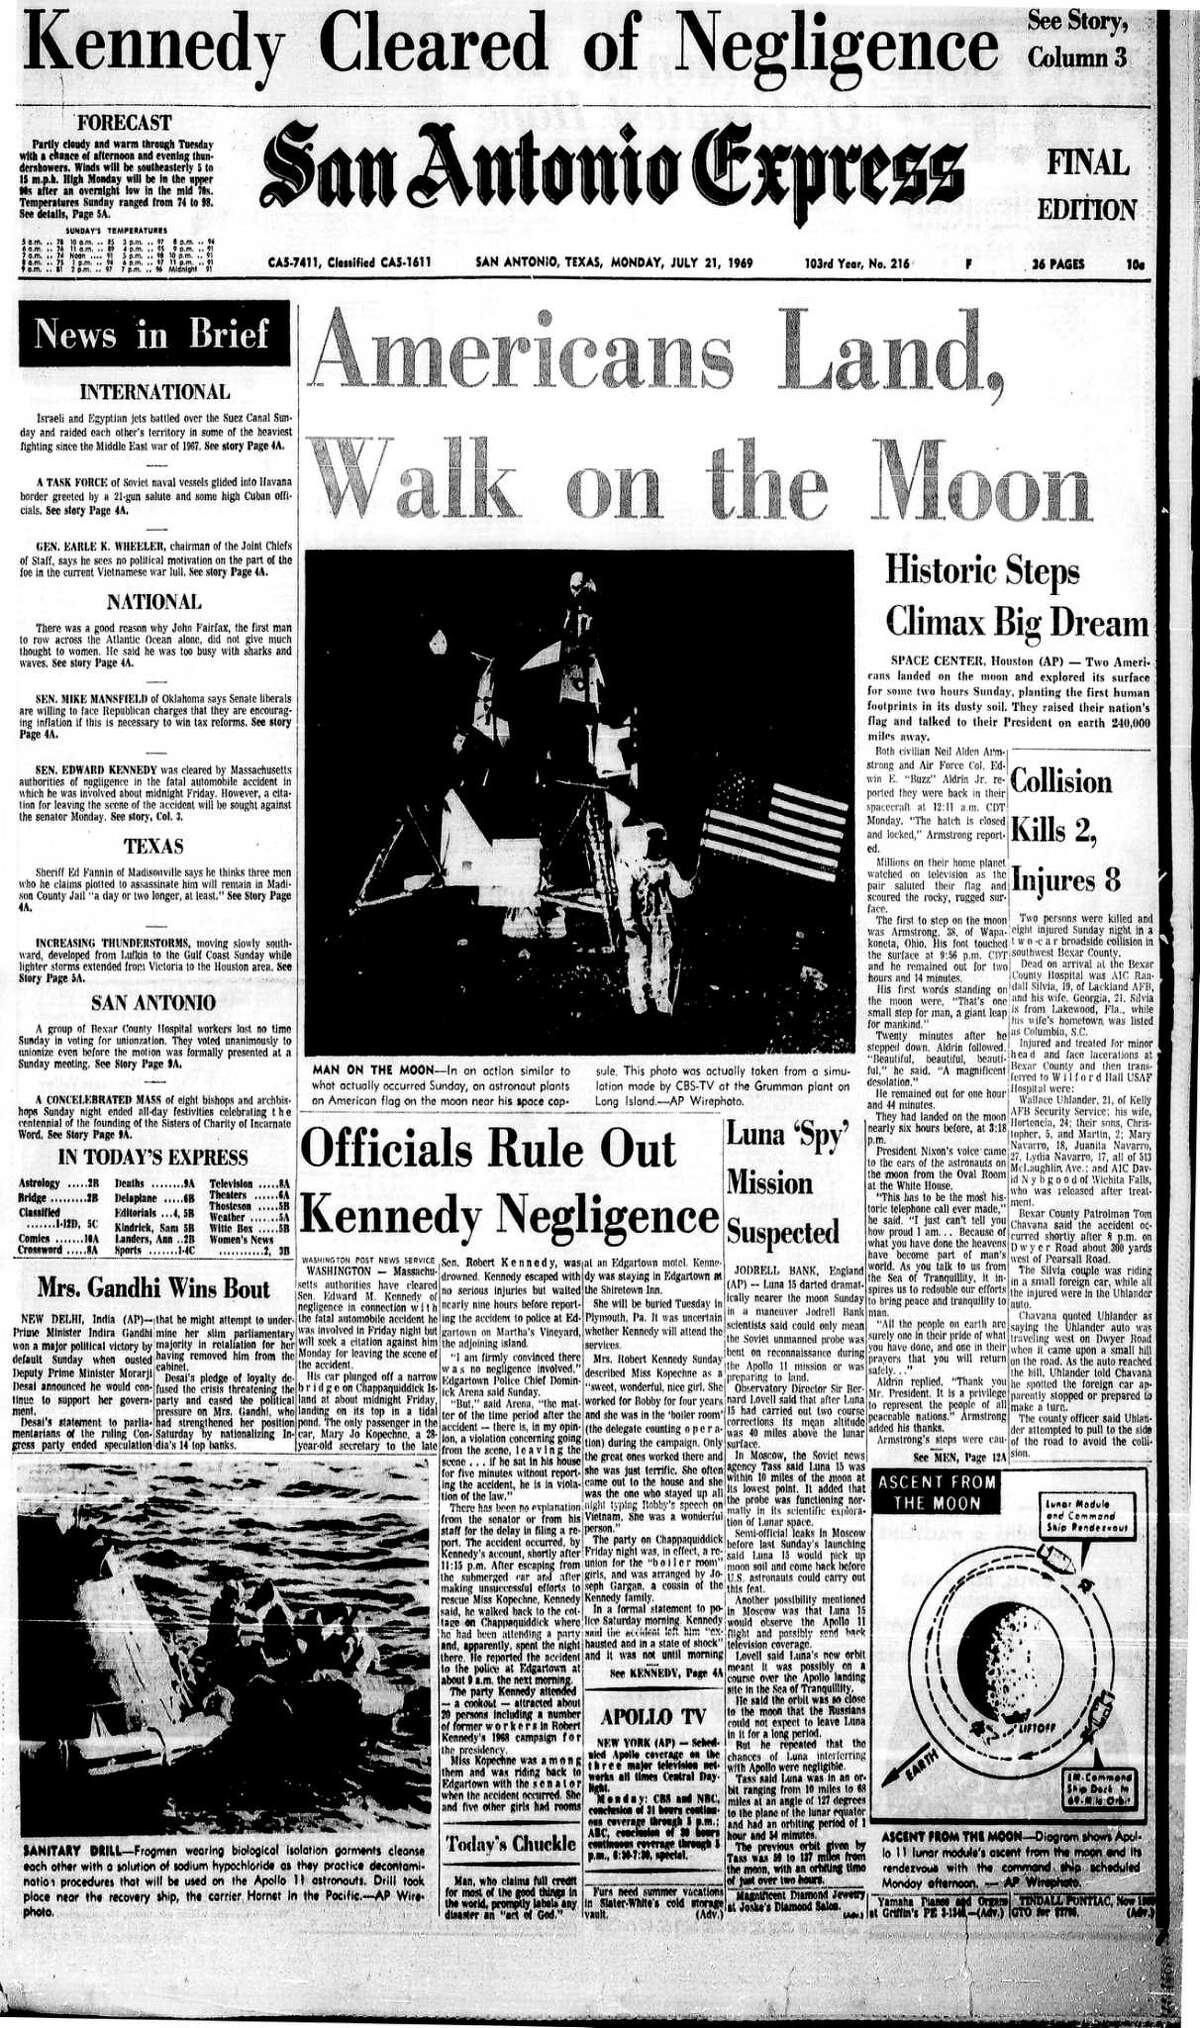 """?""""Two Americans landed on the moon and explored its surface for some two hours Sunday, planting the first human footprints in the dusty soil. They raised their nation?'s flag and talked to their President on earth 240,000 miles away.?"""""""